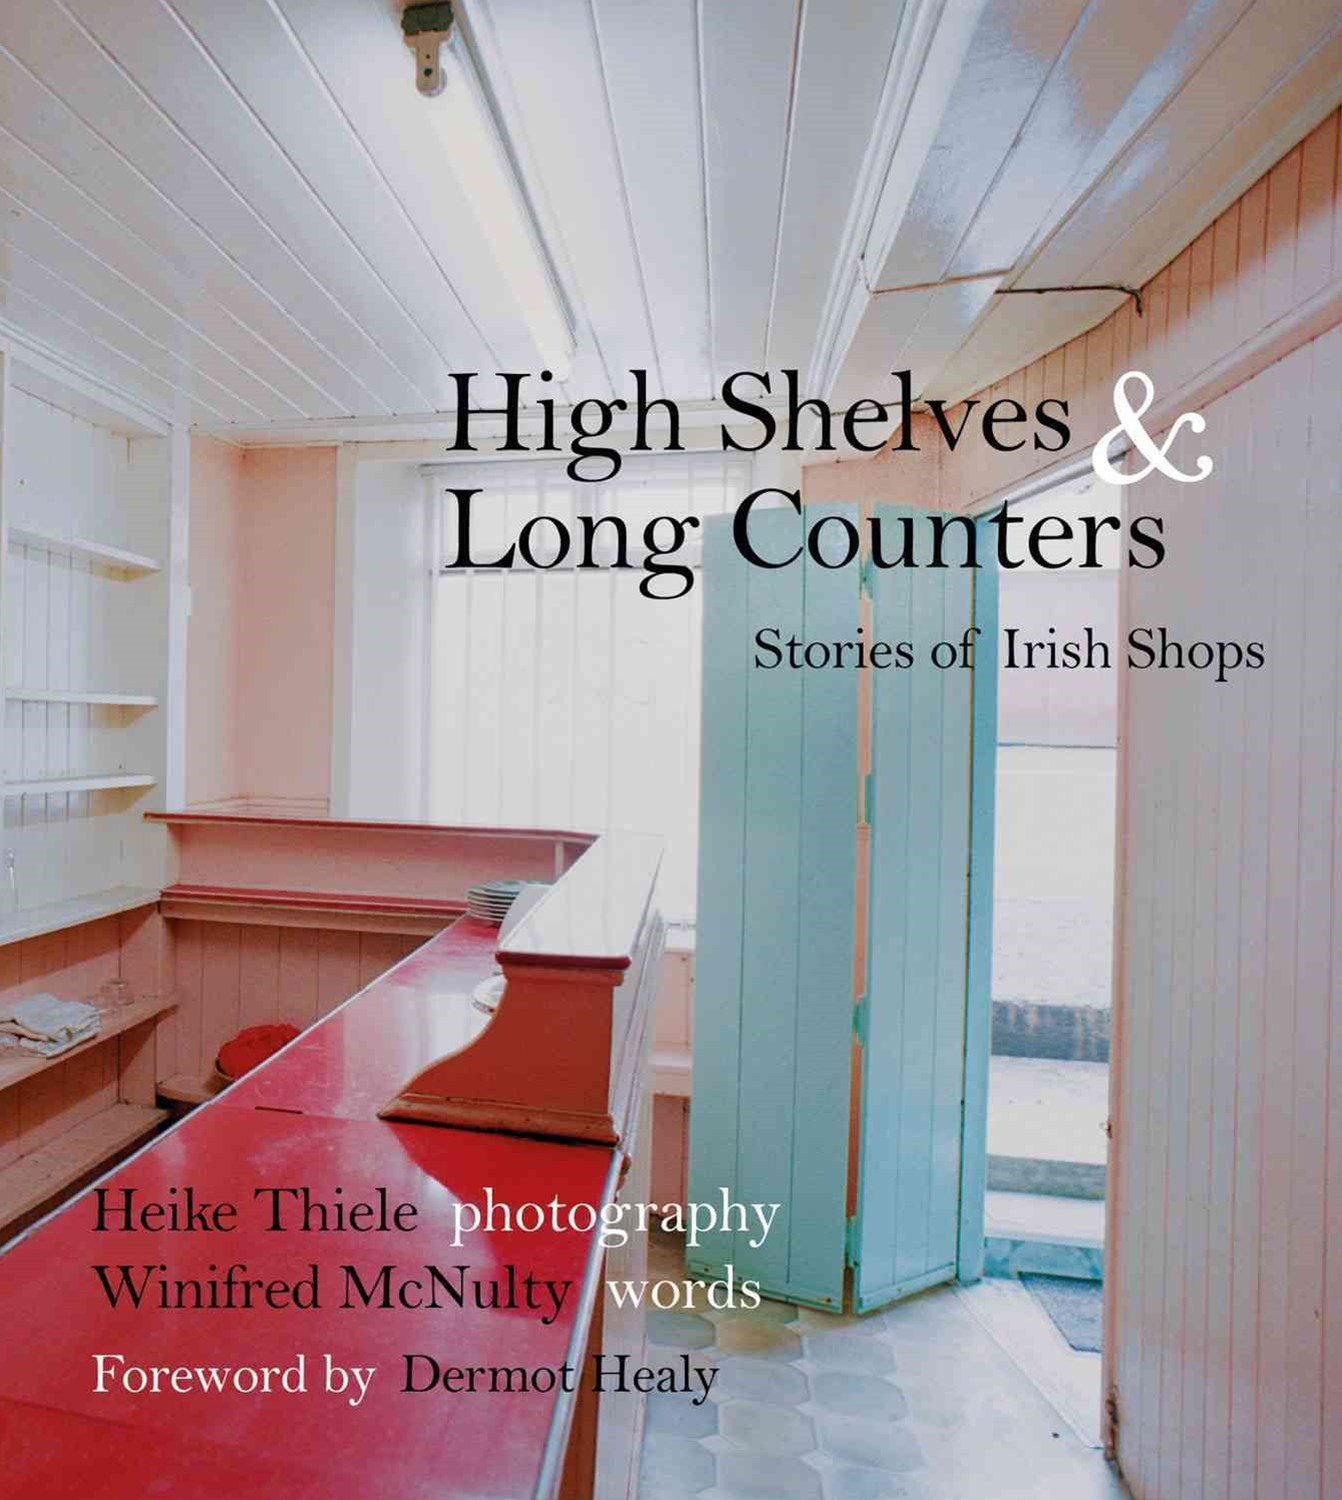 High Shelves and Long Counters